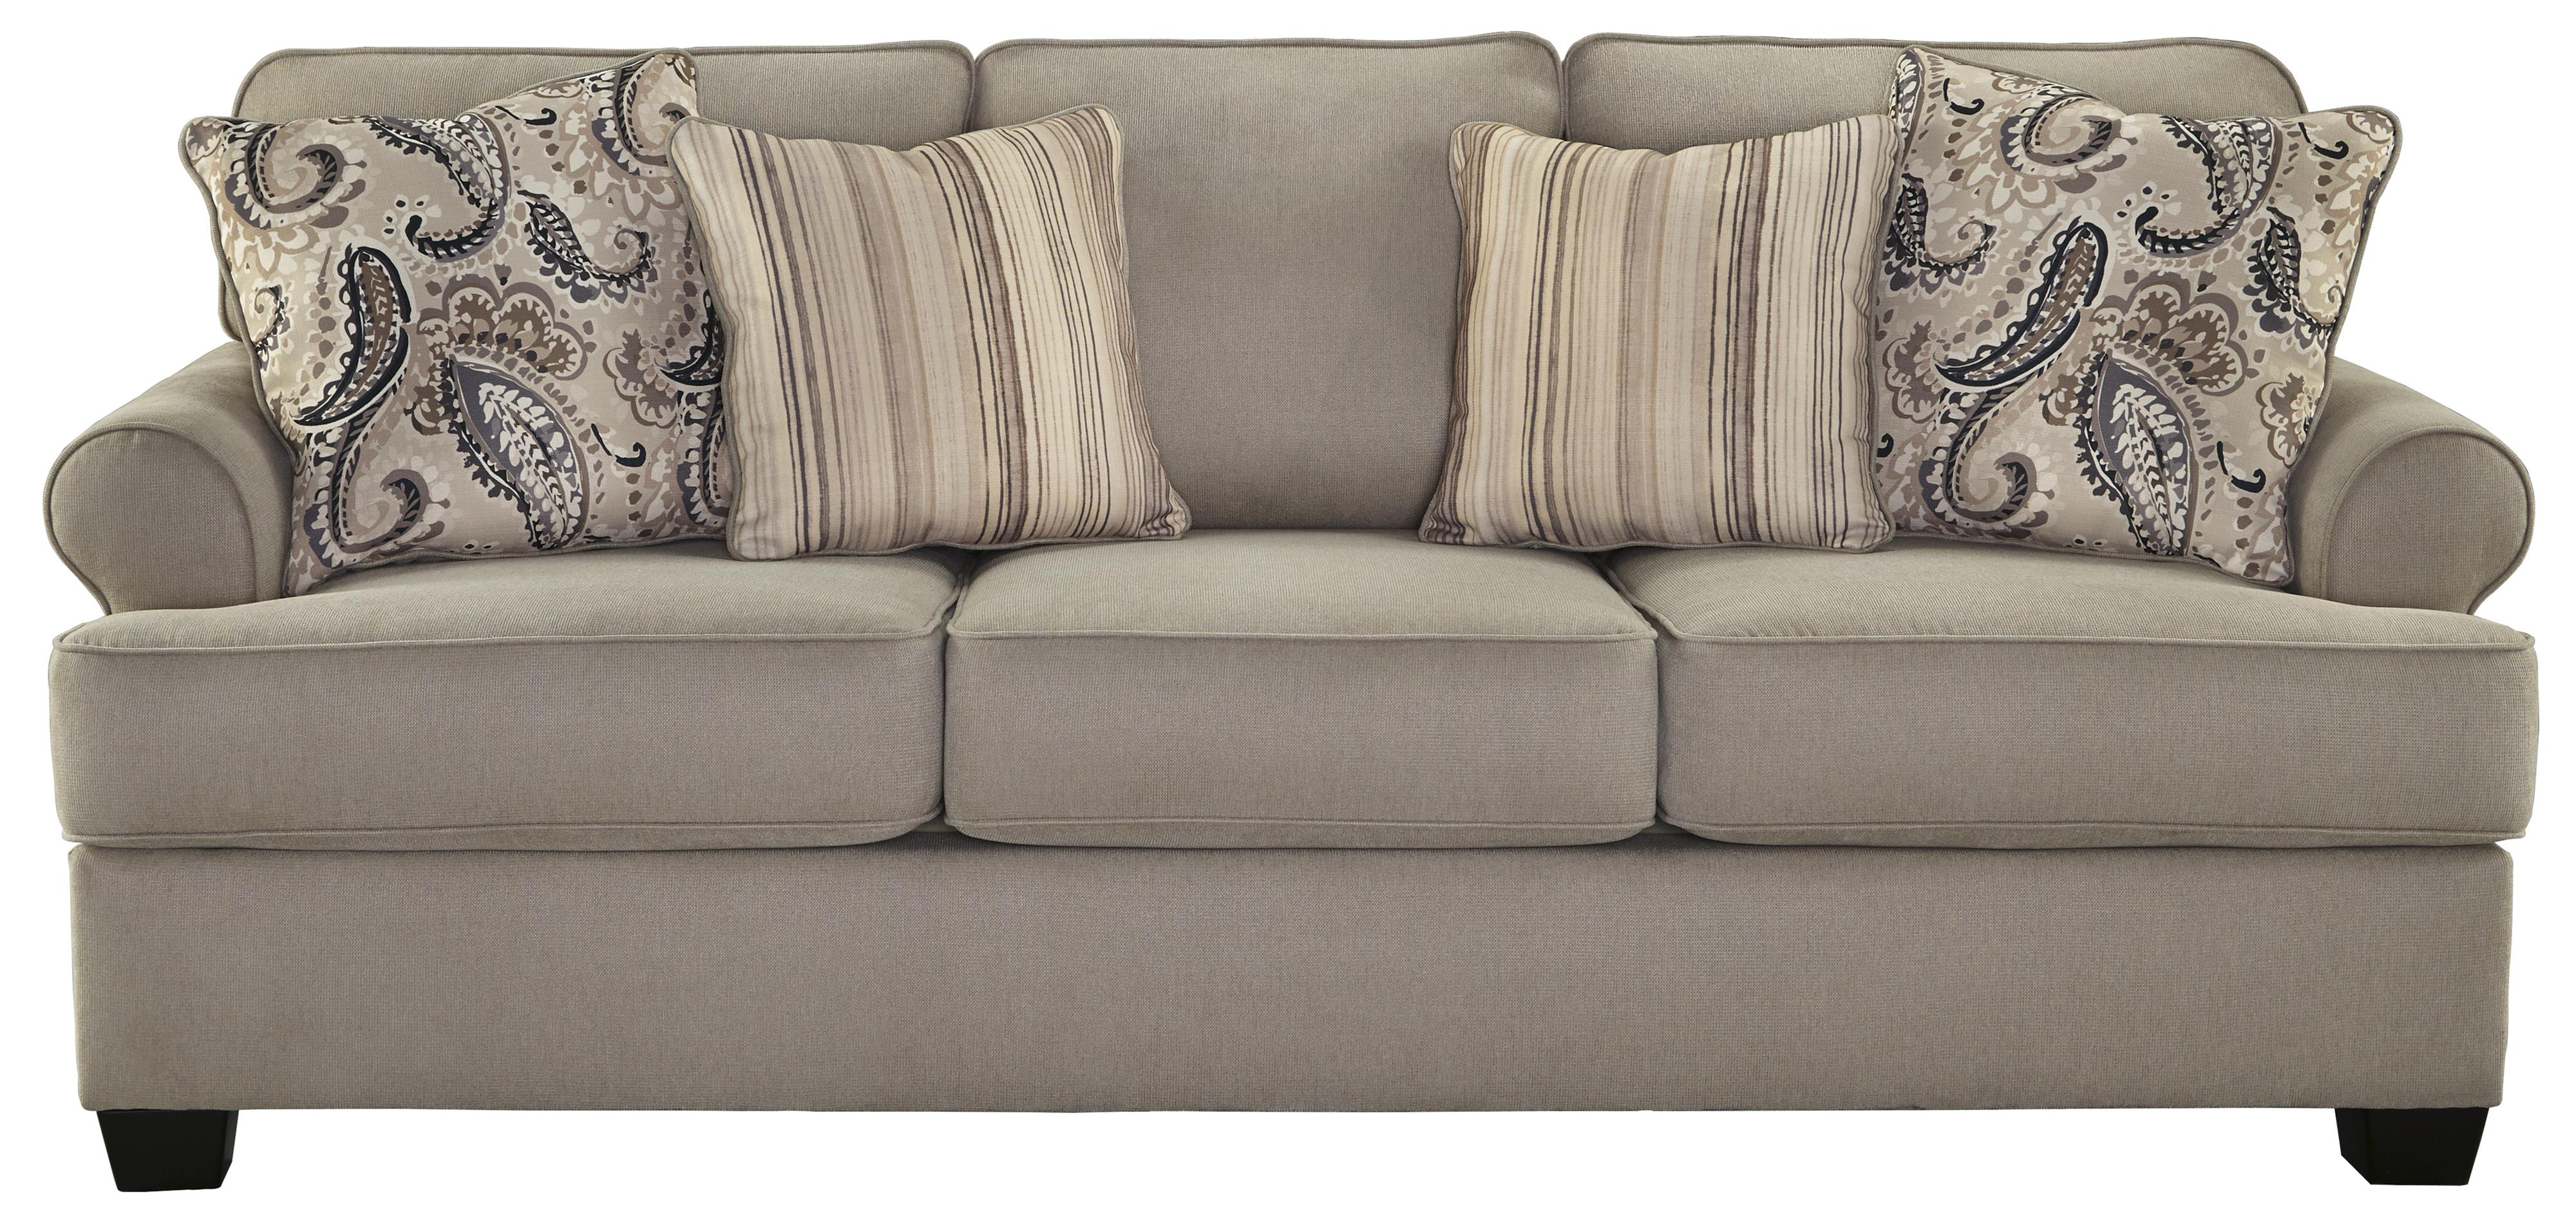 Signature Design by Ashley Melaya Queen Sofa Sleeper - Item Number: 4780039